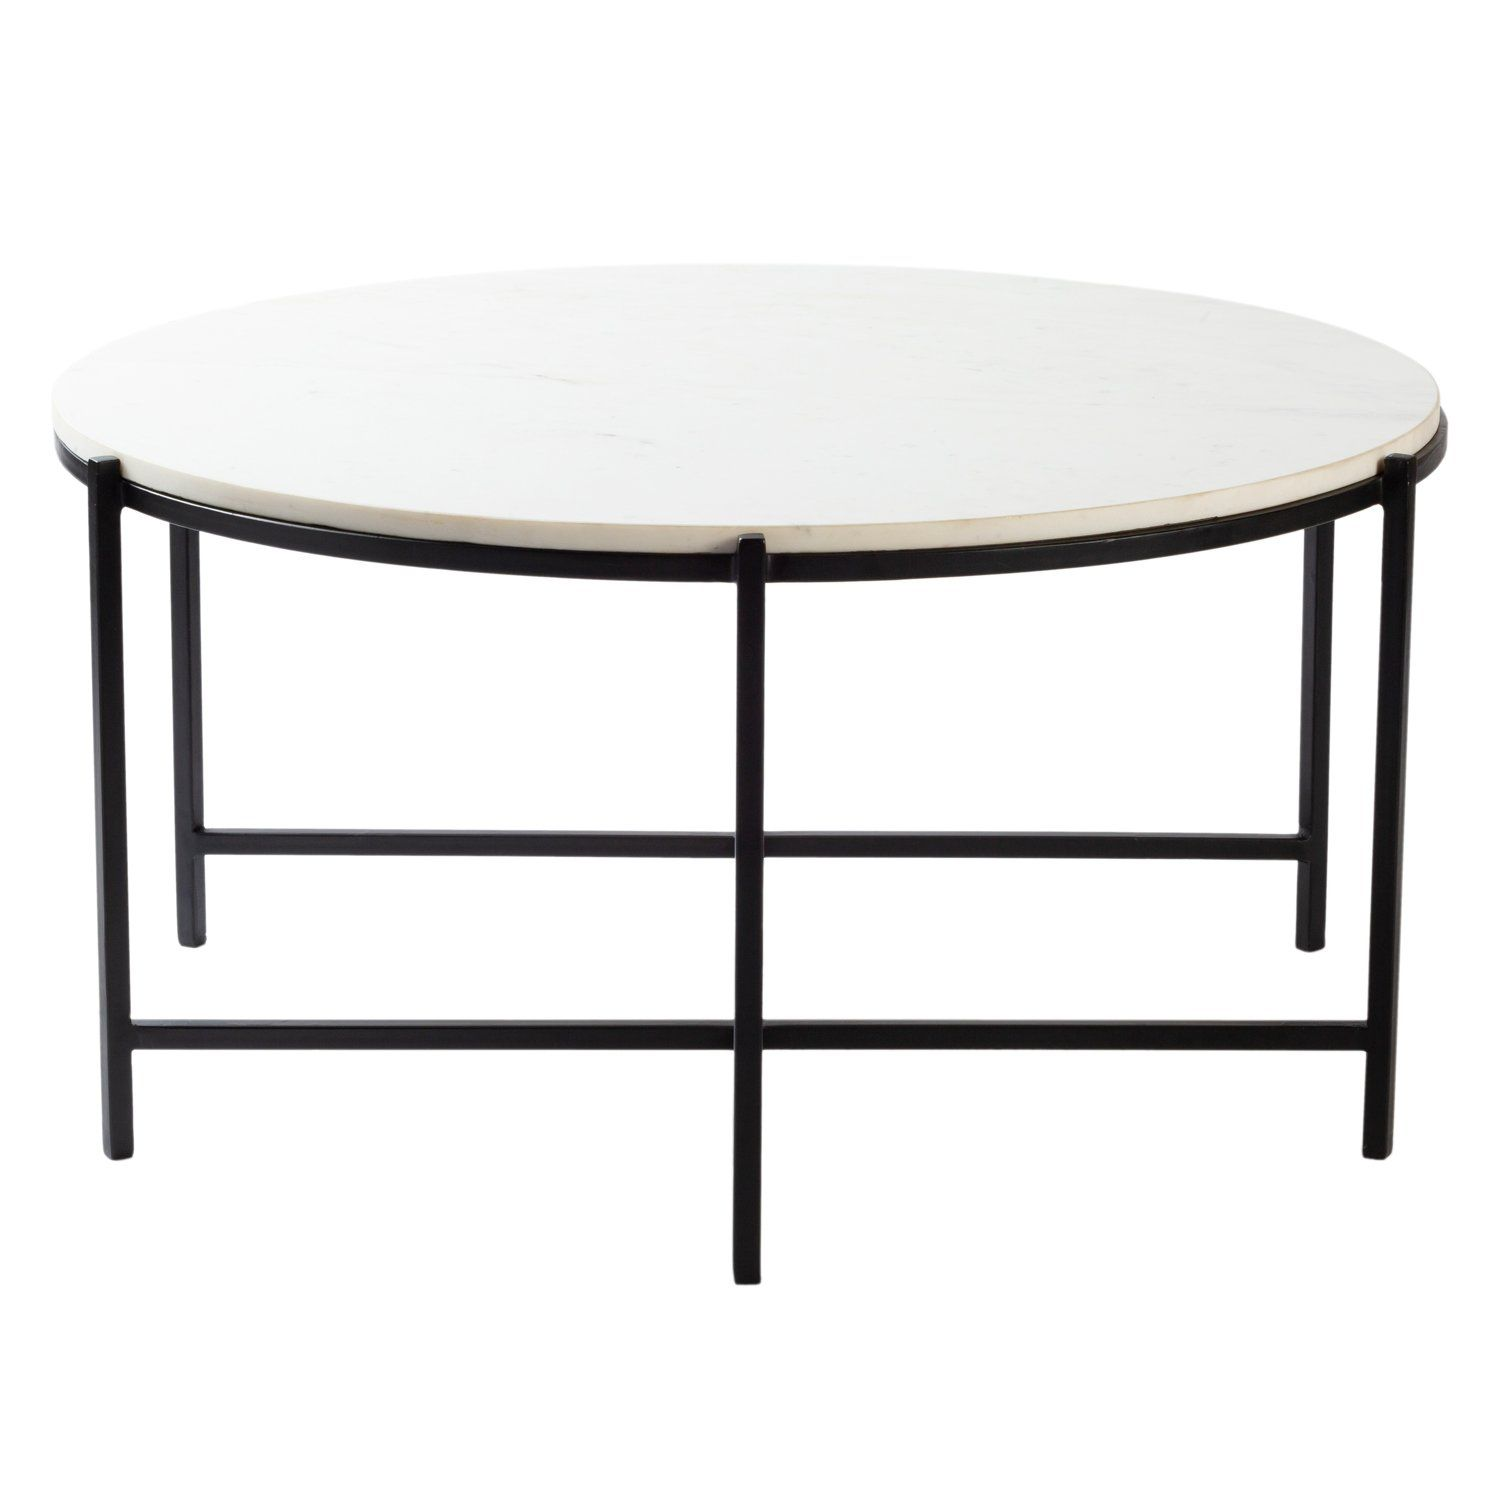 Piermont Round Coffee Table In 2021 Coffee Table Furniture Modern Furniture Living Room [ 1500 x 1500 Pixel ]